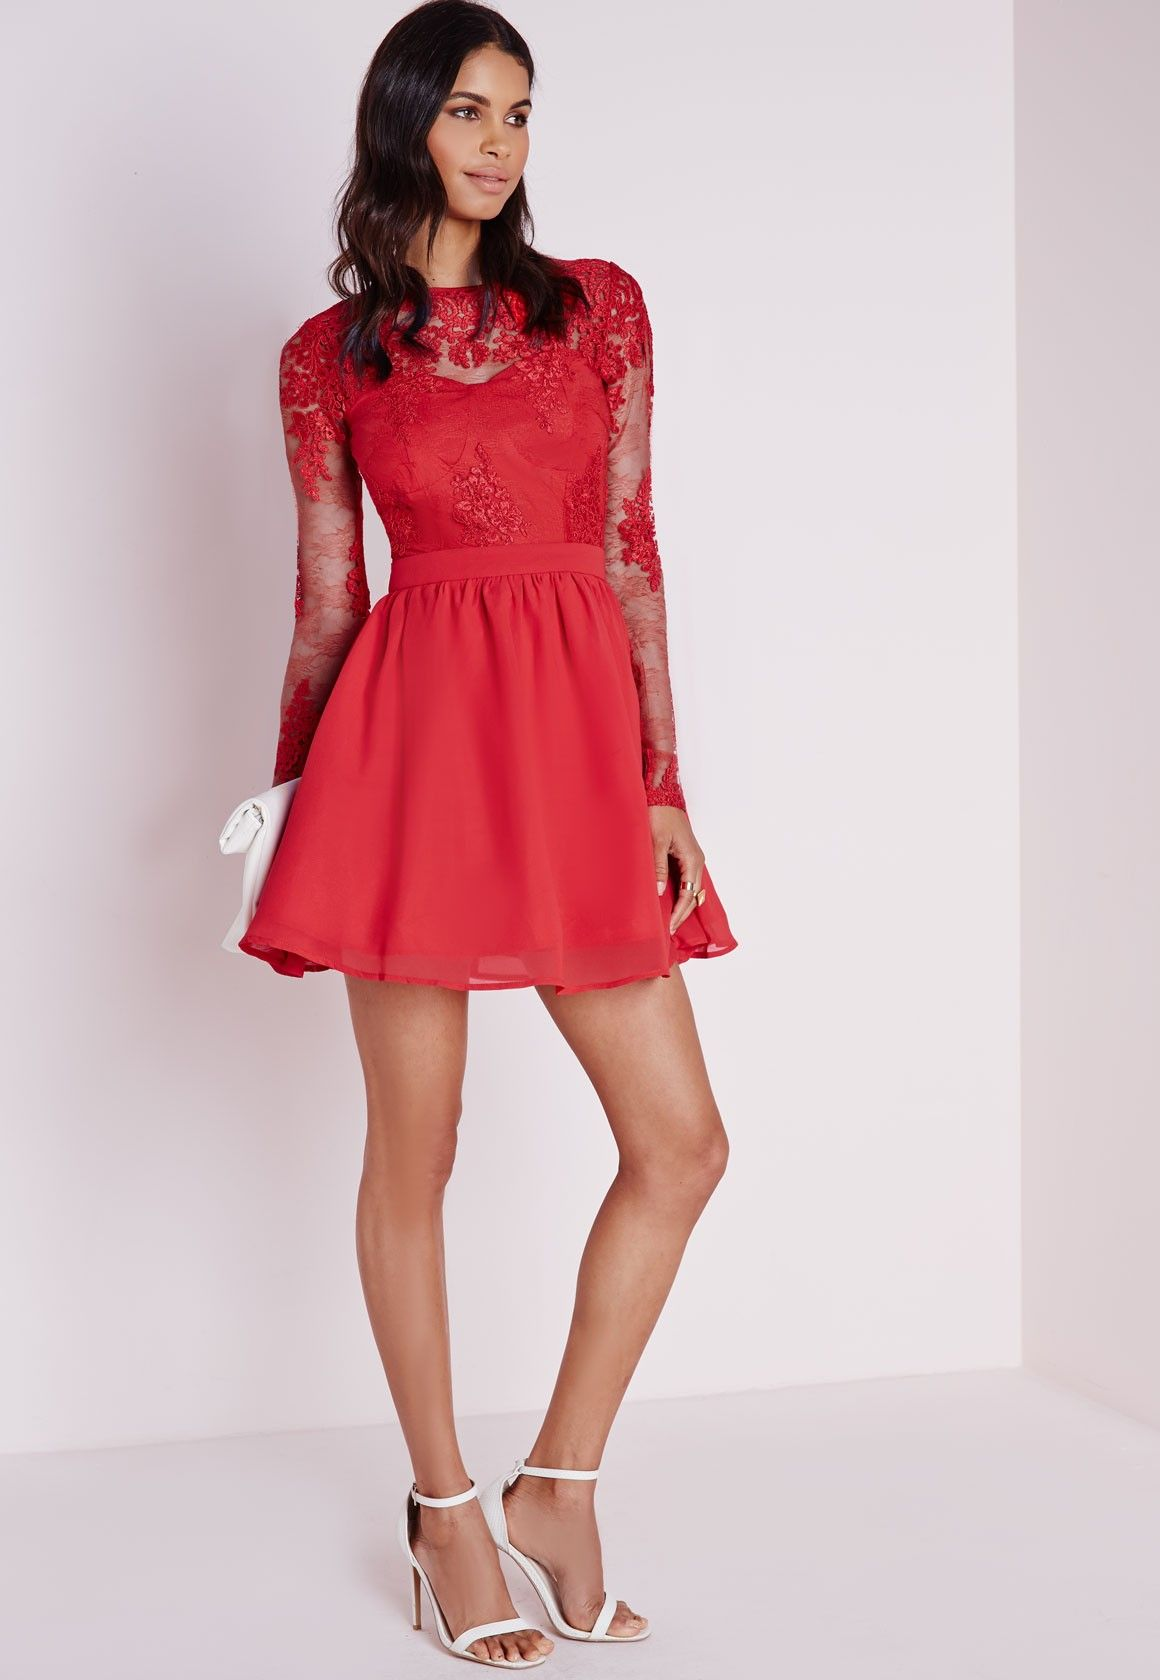 Long Sleeve Red Skater Dress